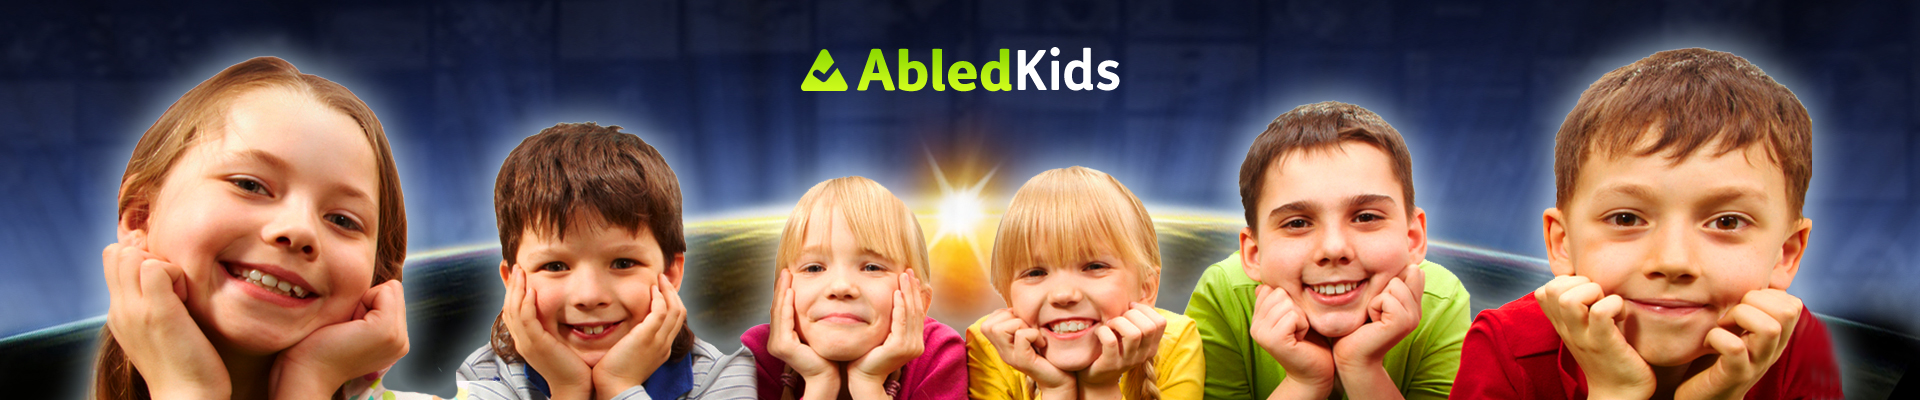 AbledKids network banner shows a row of kids resting their chins on their hands and looking at the camera